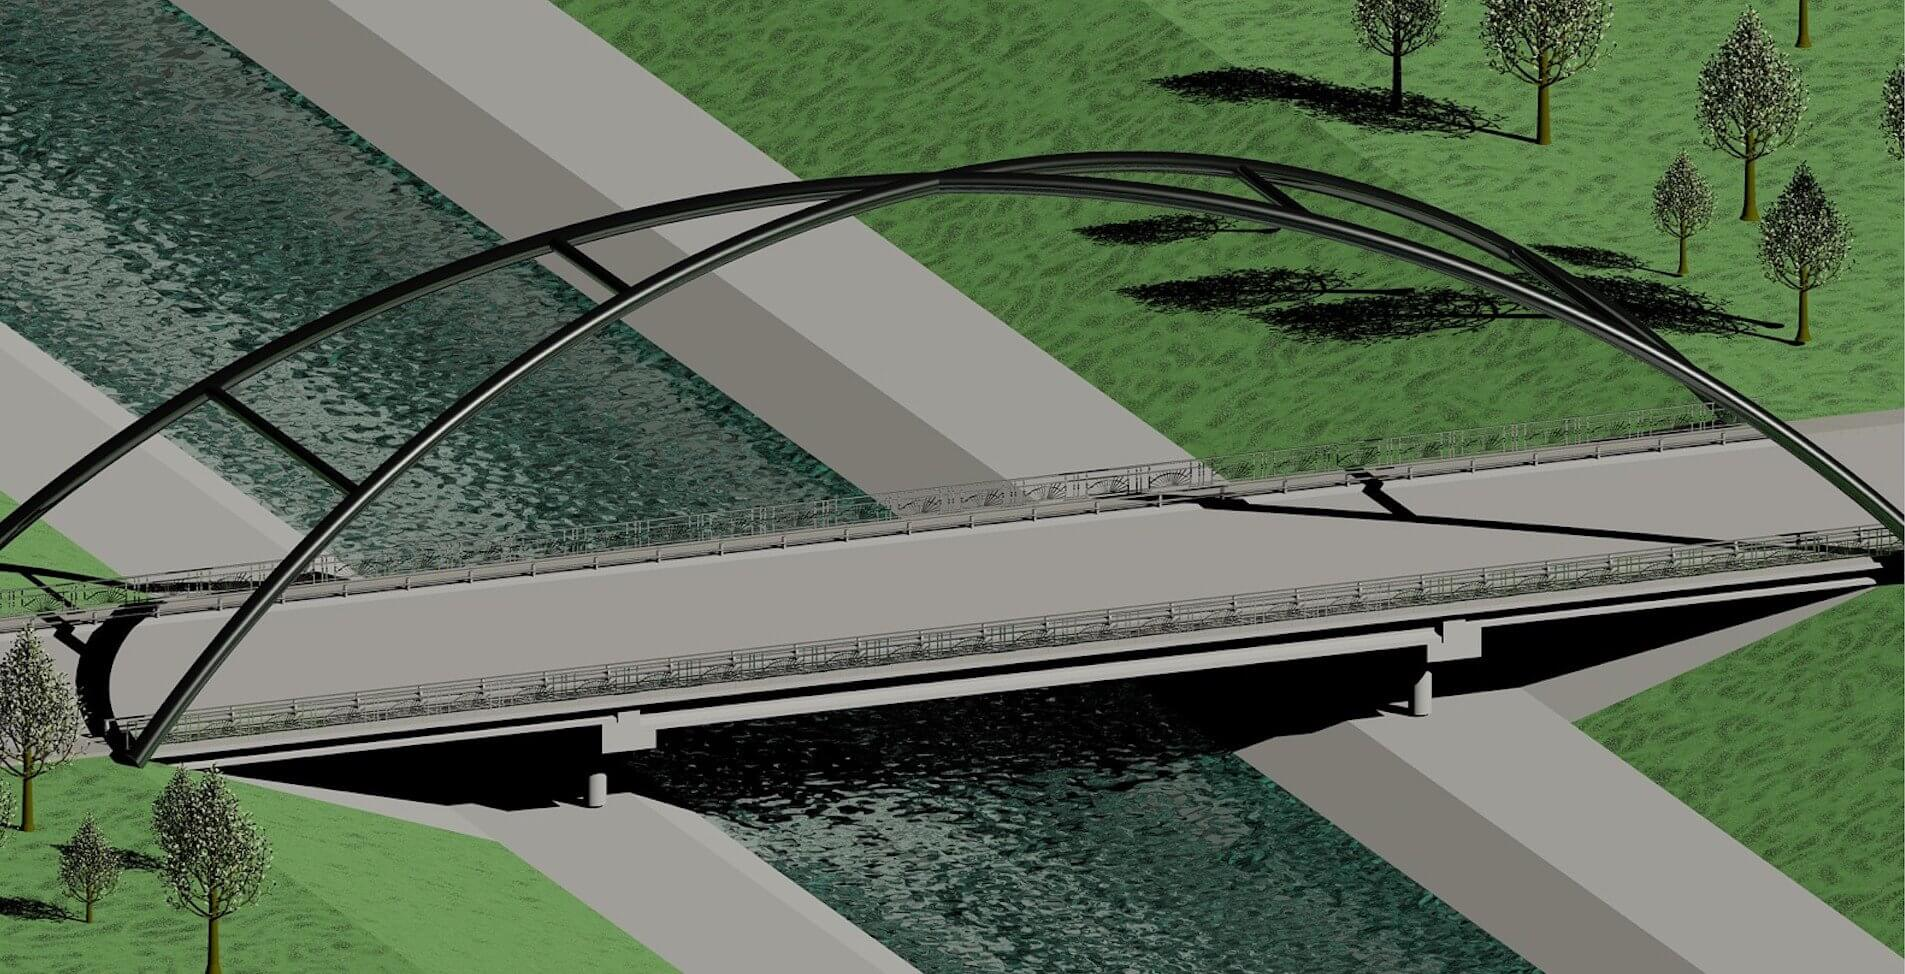 A rendering shows a redesigned Greenbriar Drive bridge over Houston's Brays Bayou that would streamline the flow of water to Galveston Bay. A team of Rice University engineering students designed enhancements to the ongoing Project Brays to alleviate flooding in two Houston neighborhoods. (Courtesy of Brays Yourself/Rice University)